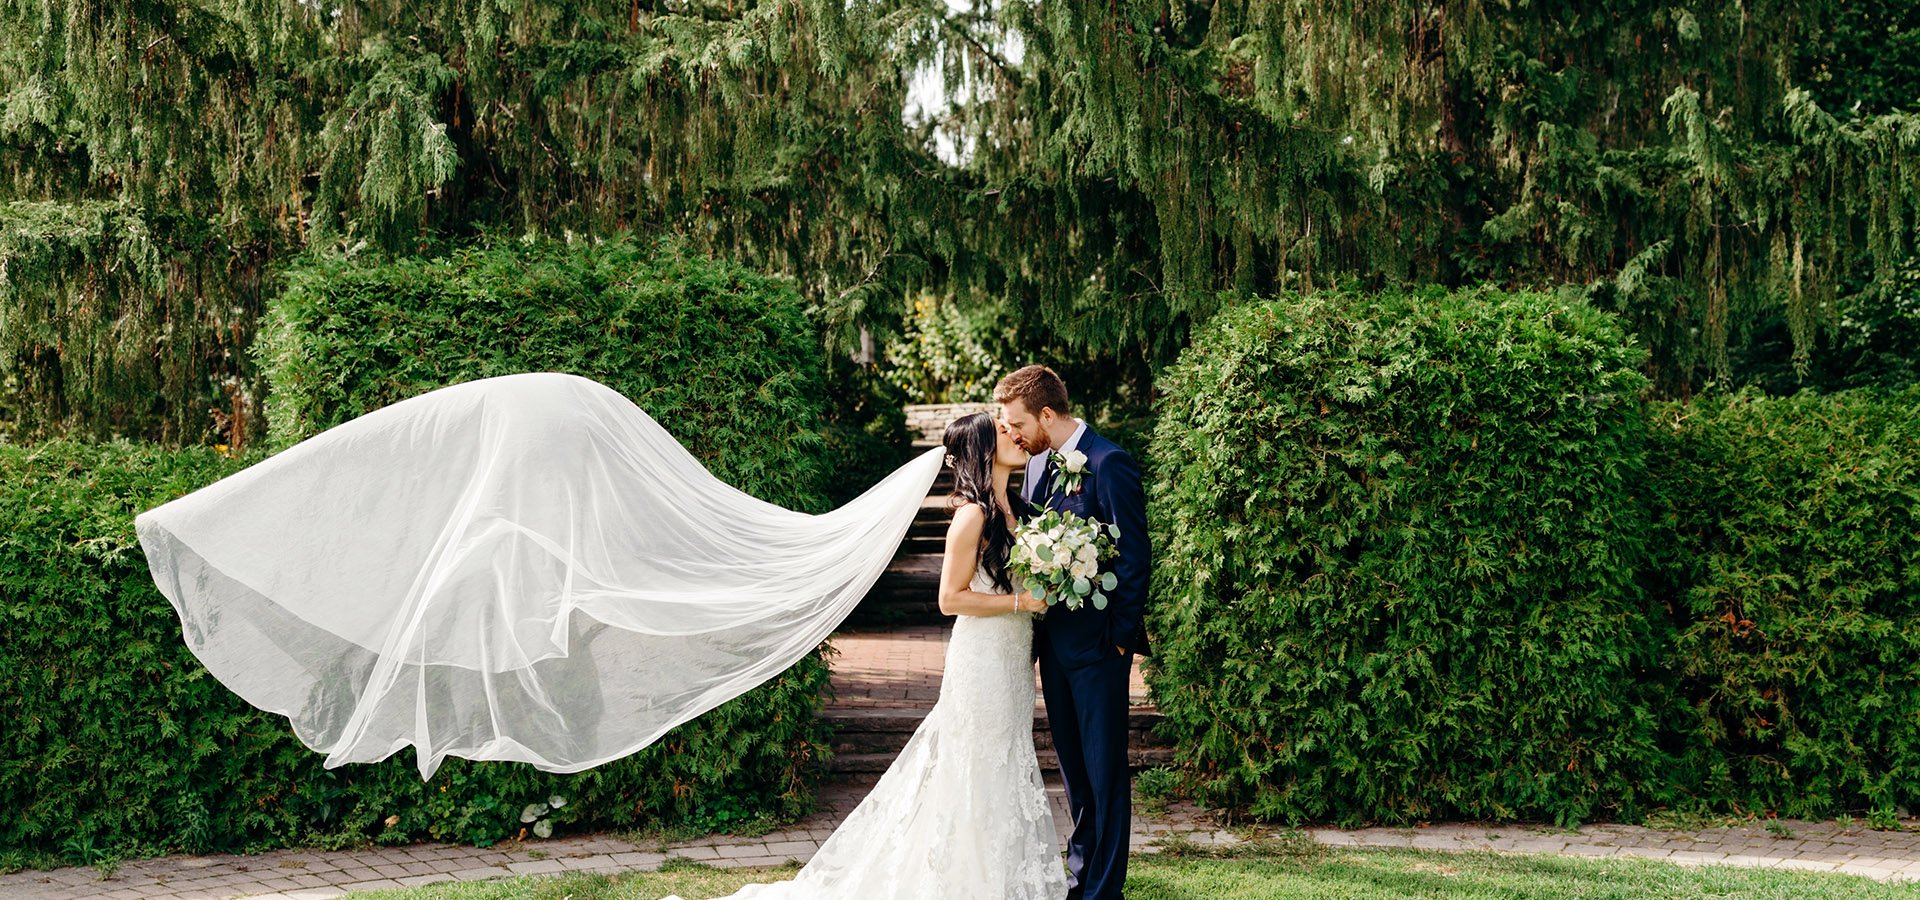 Hero image for Cheryl and Chris' Romantic Summer Wedding at Archeo